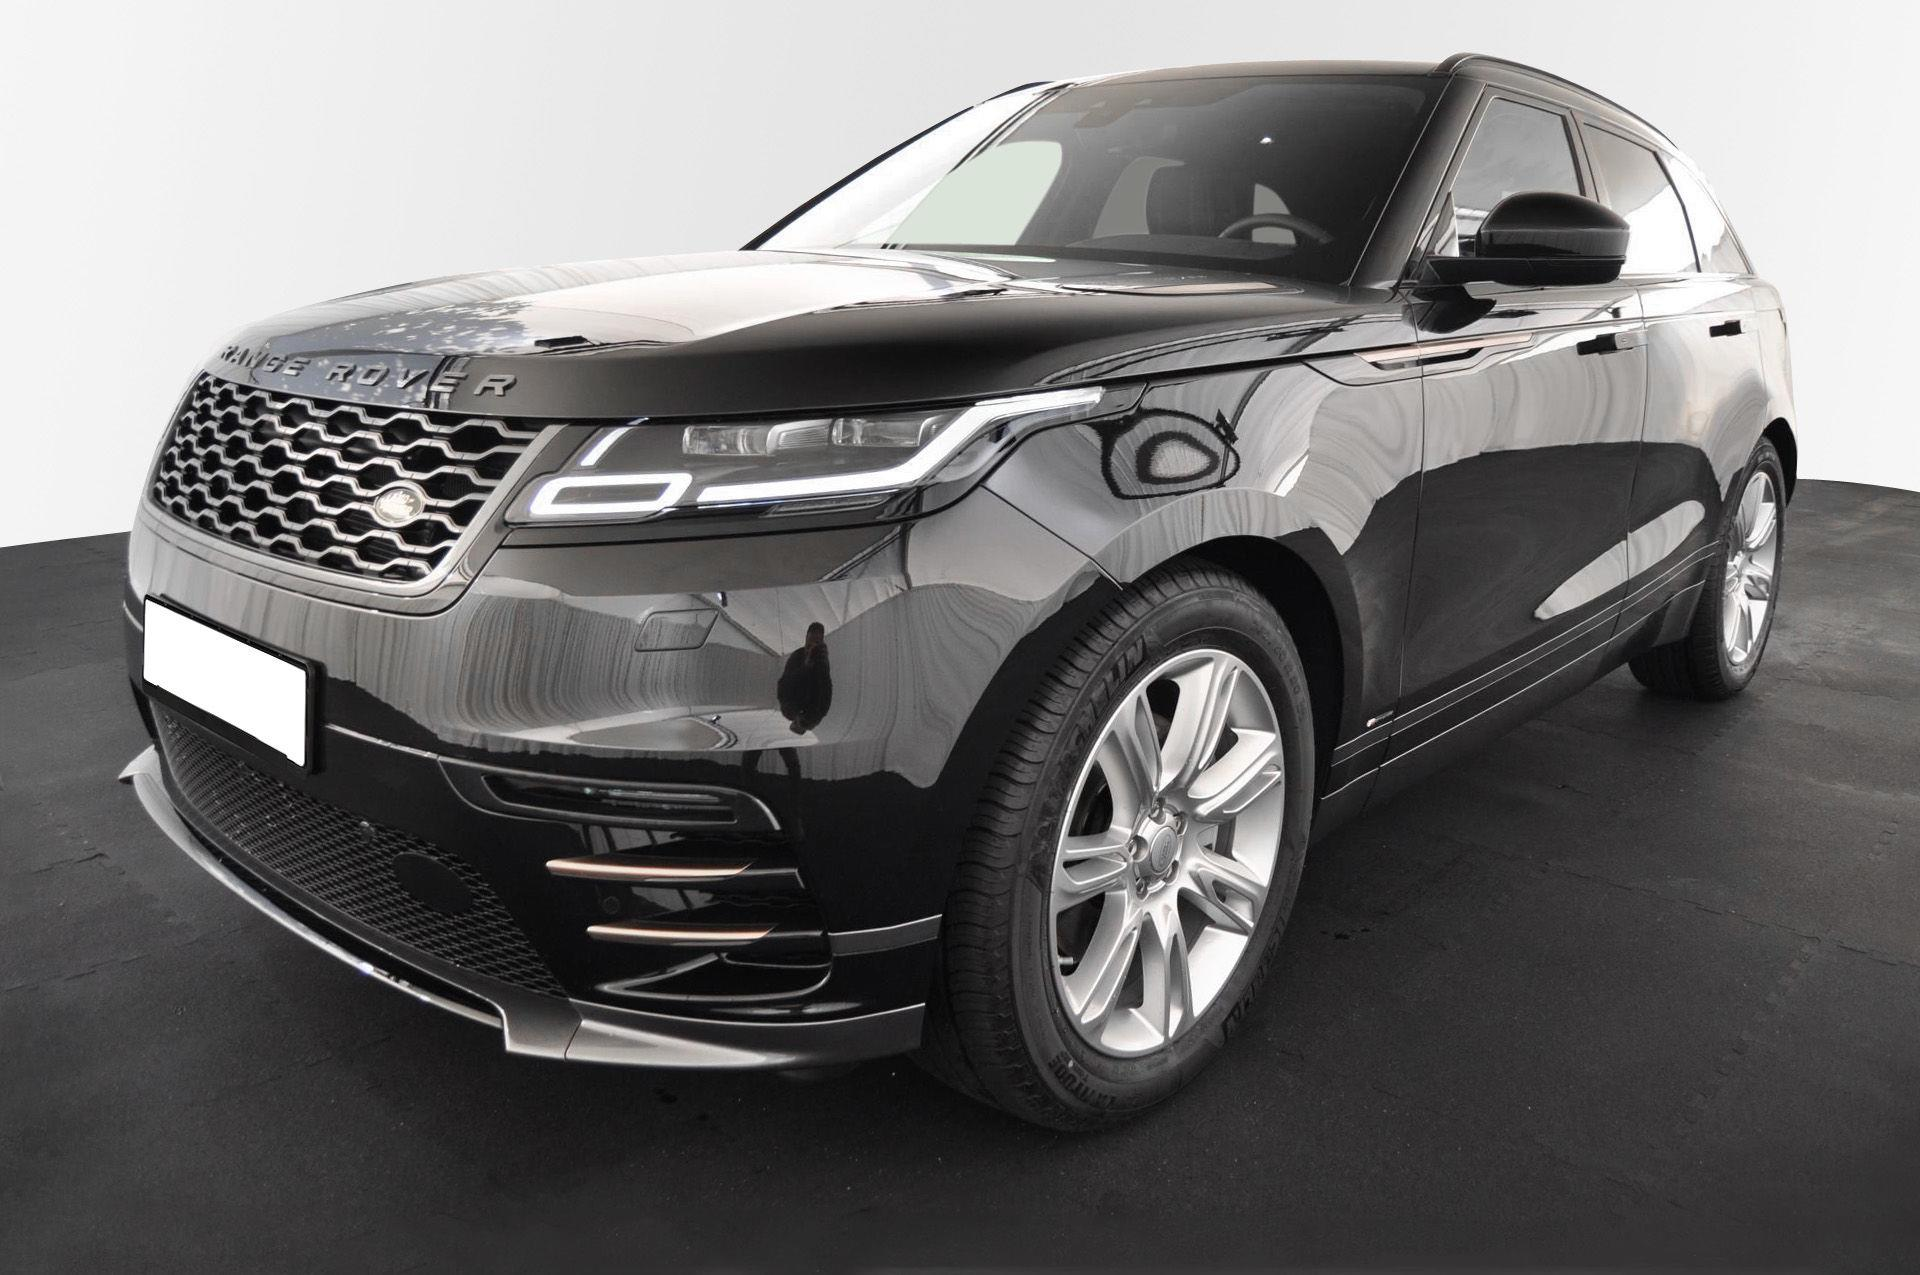 Range Rover Velar * Faros Led * Navegación * Llanta 20 * Apple CarPlay 0000006692